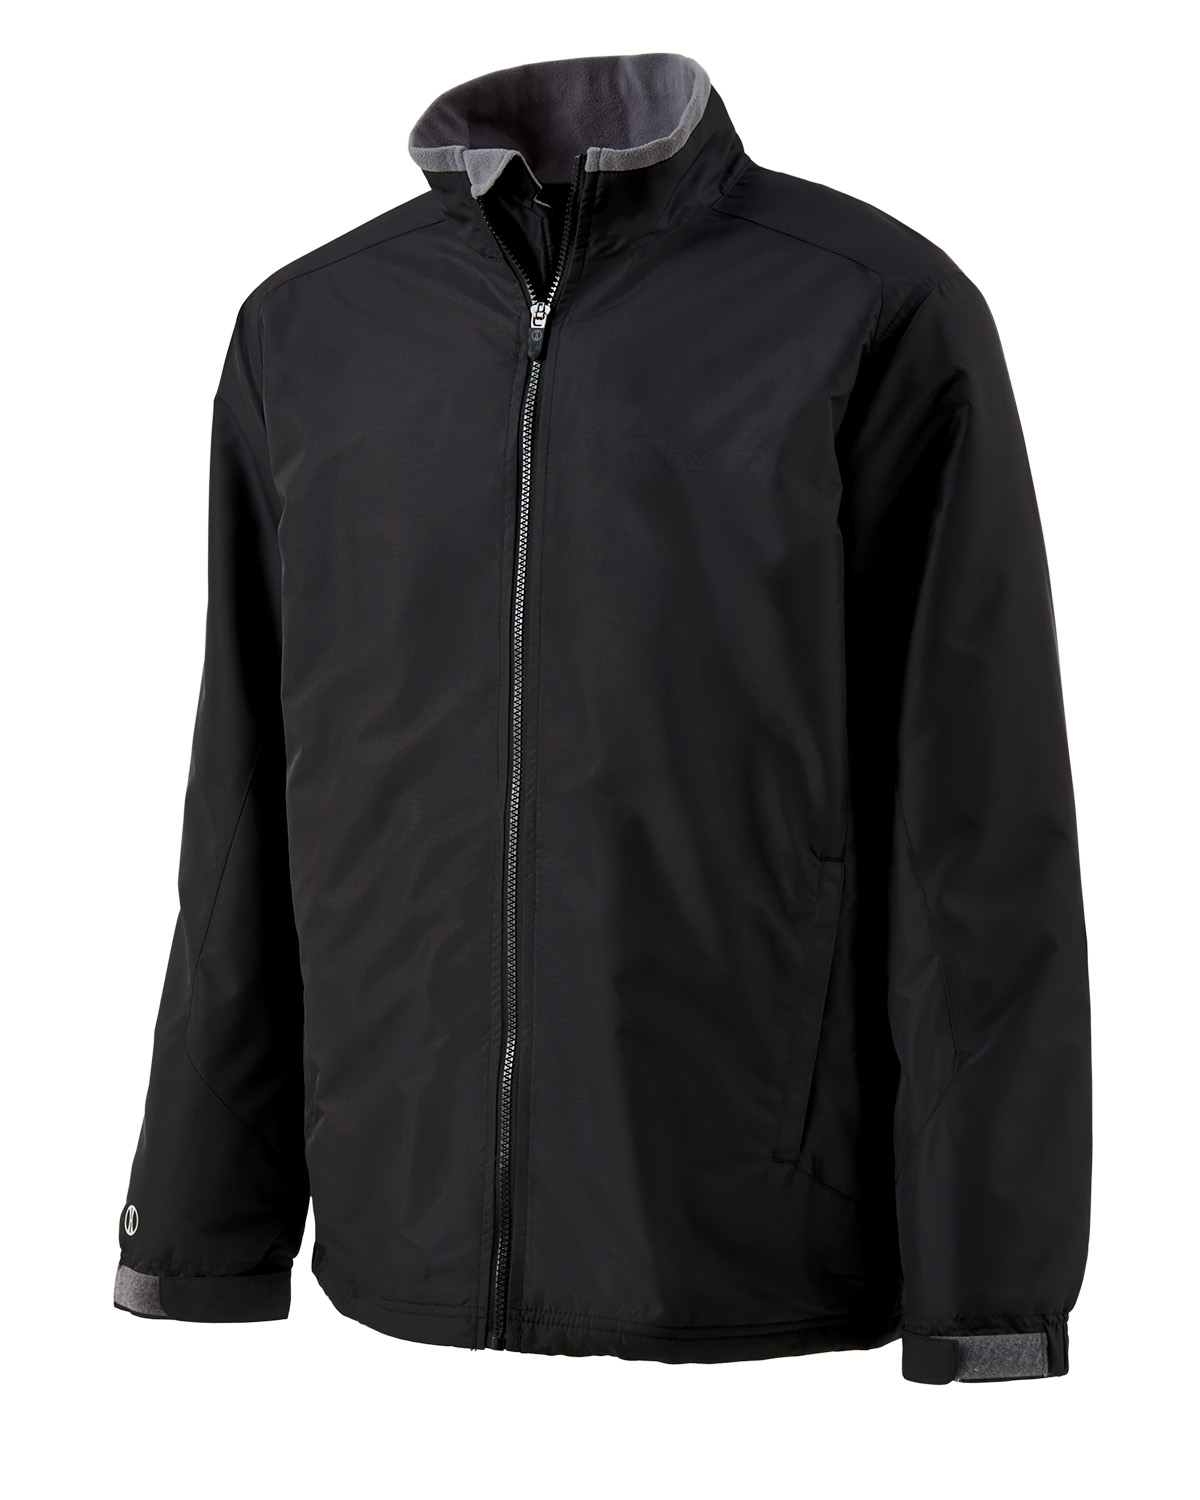 Holloway 229002 - Adult Polyester Full Zip Scout 2.0 Jacket